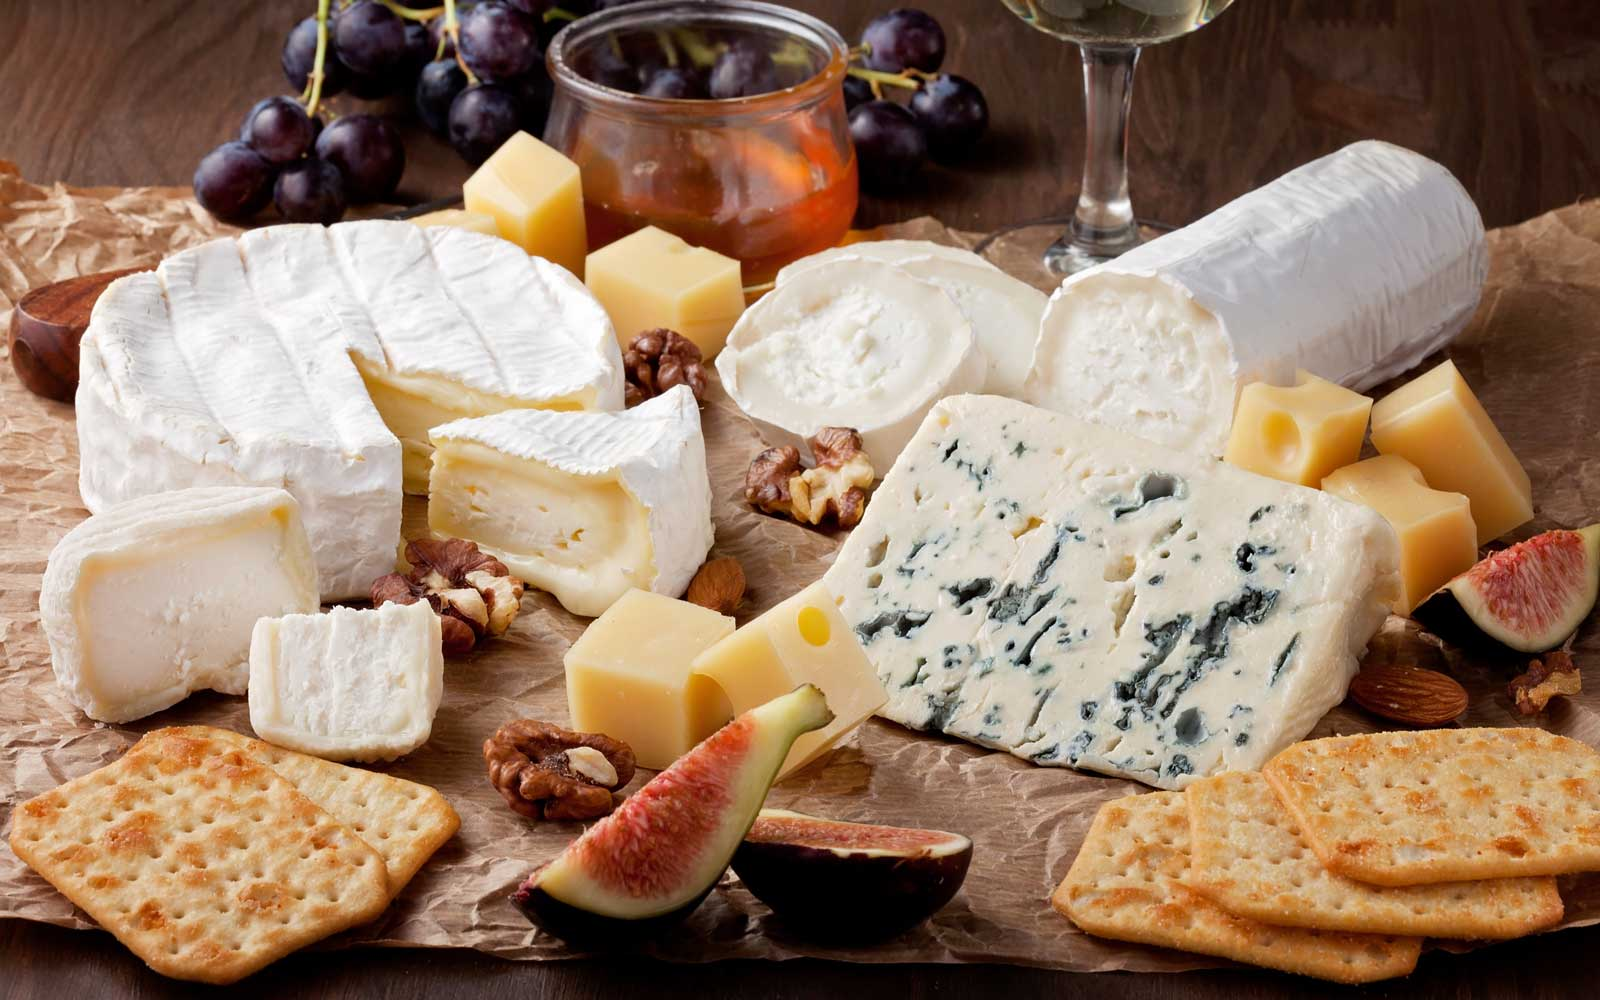 This Is the 'Grammy Awards of Cheese' — and Wisconsin Won Big